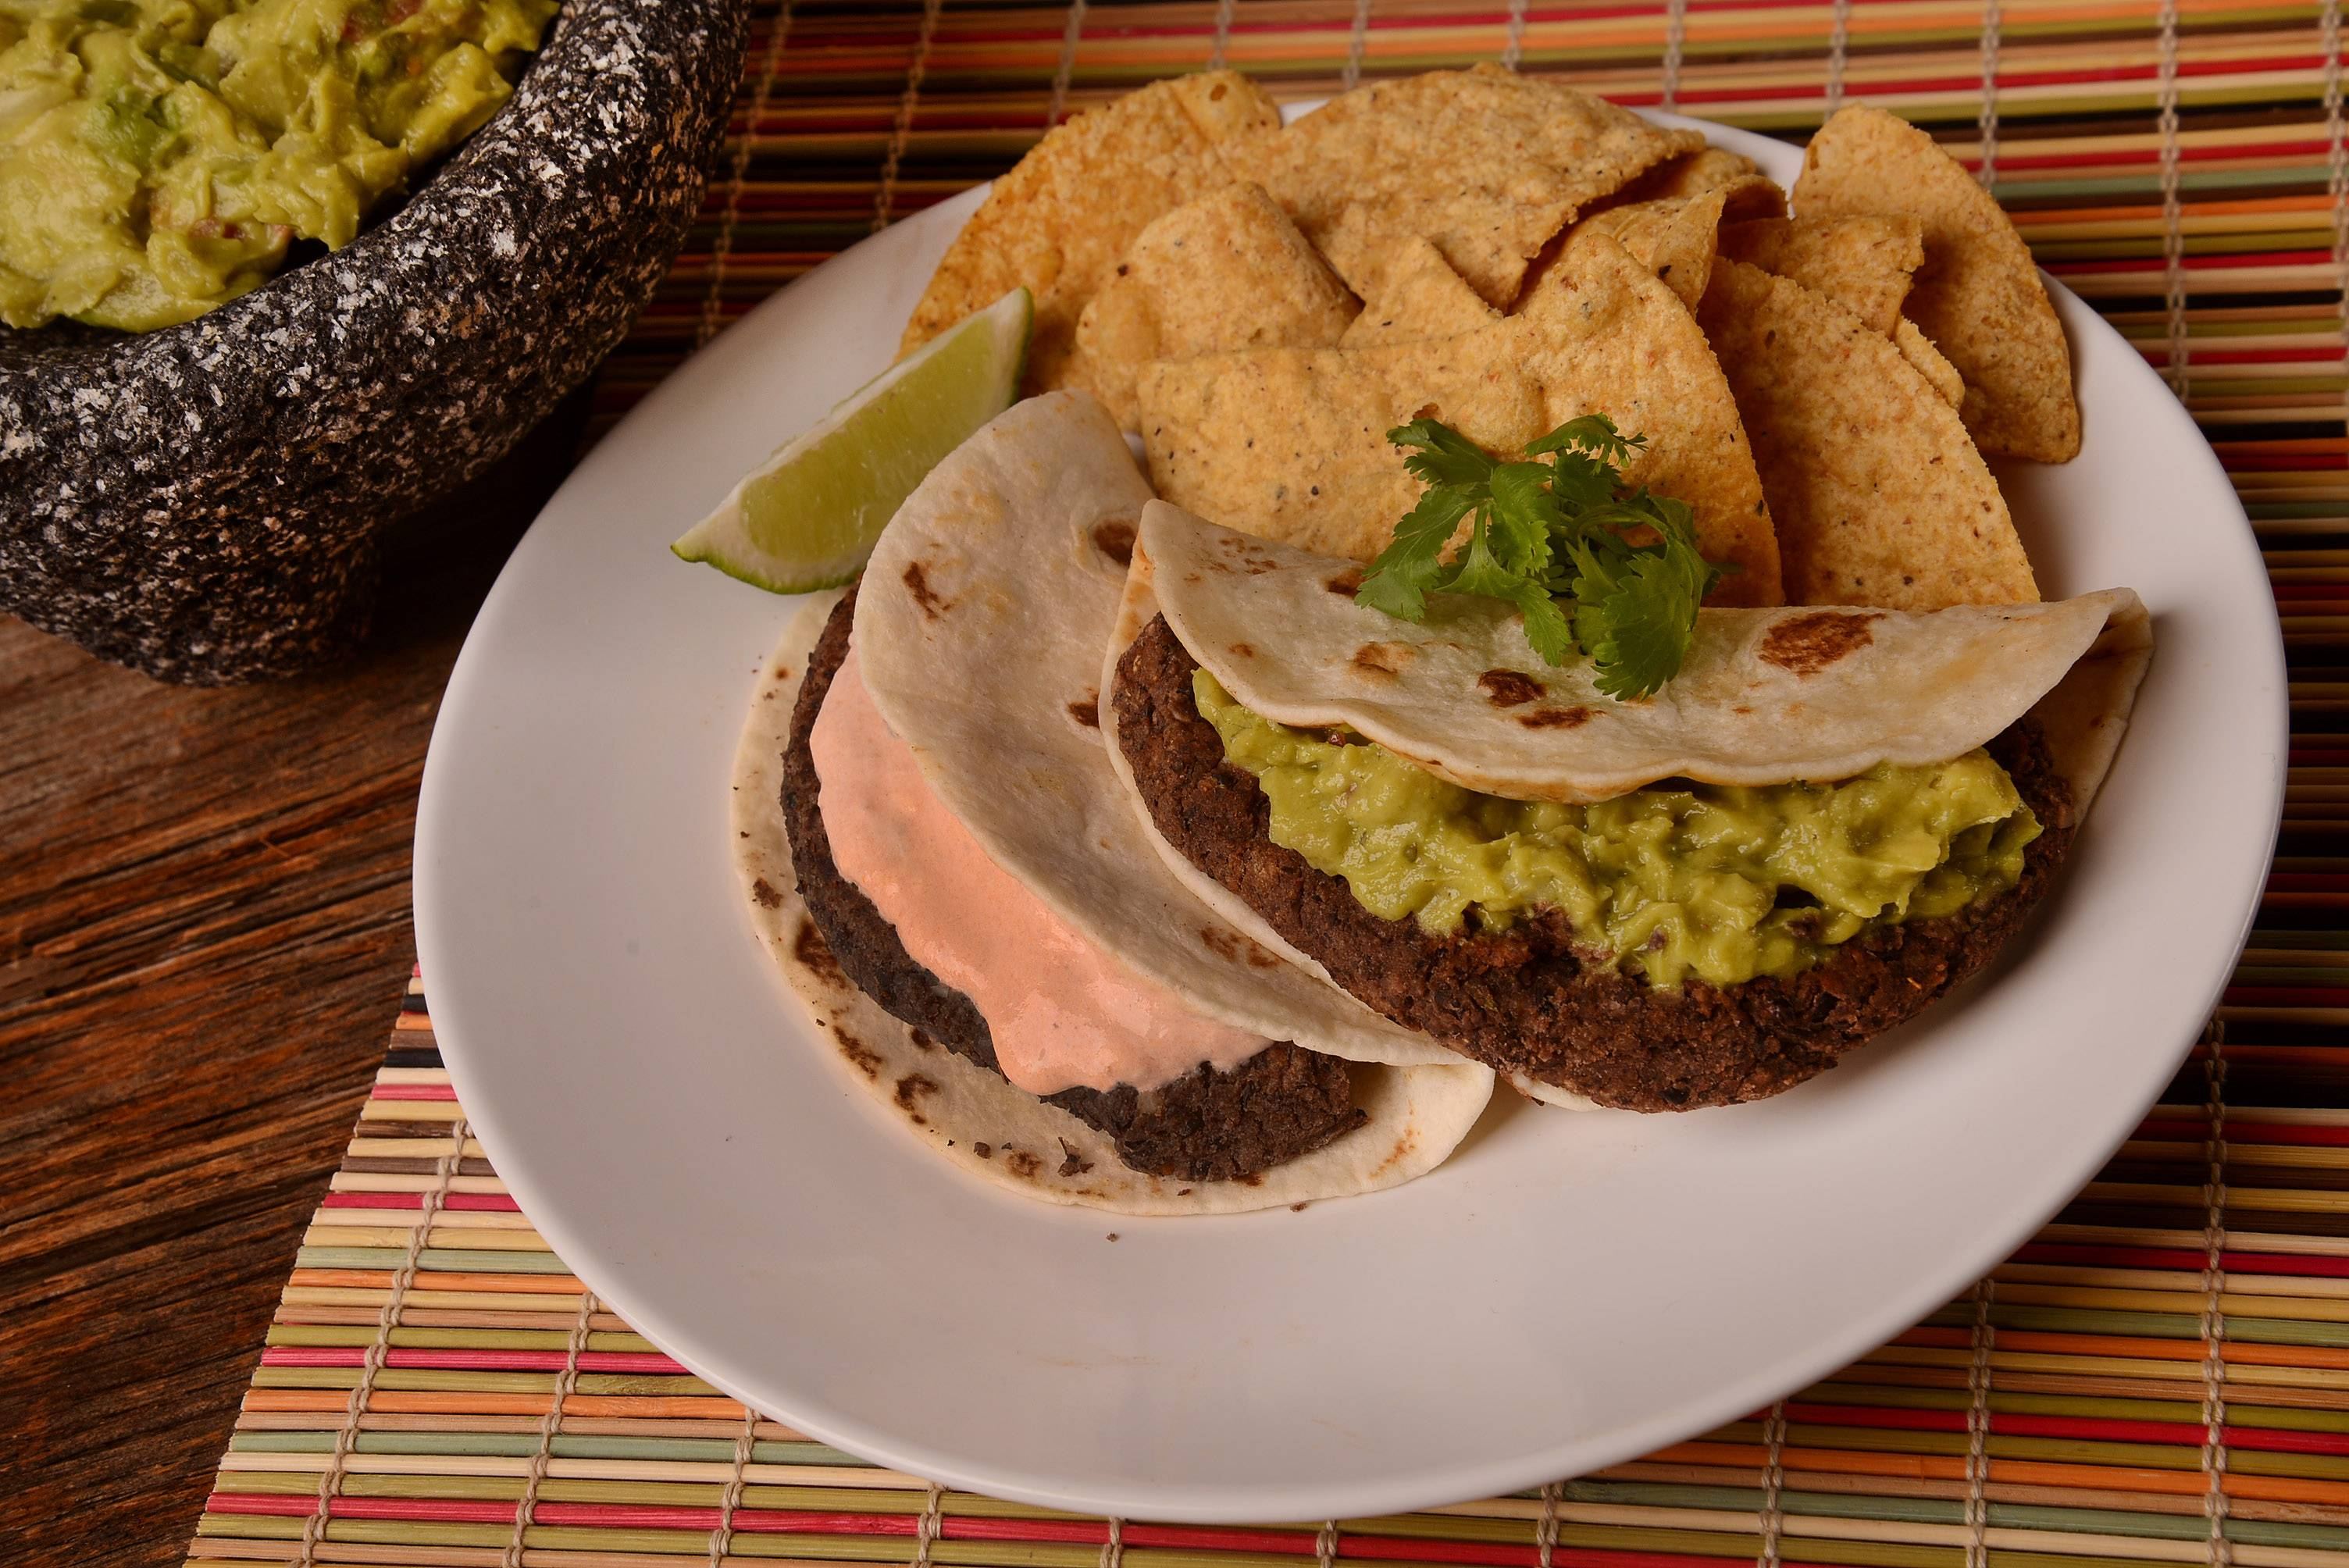 Lime and a hint of heat make Black Bean Burgers a favorite of vegetarians and carnivores alike. Serve them on tortillas topped with creamy salsa or guacamole.